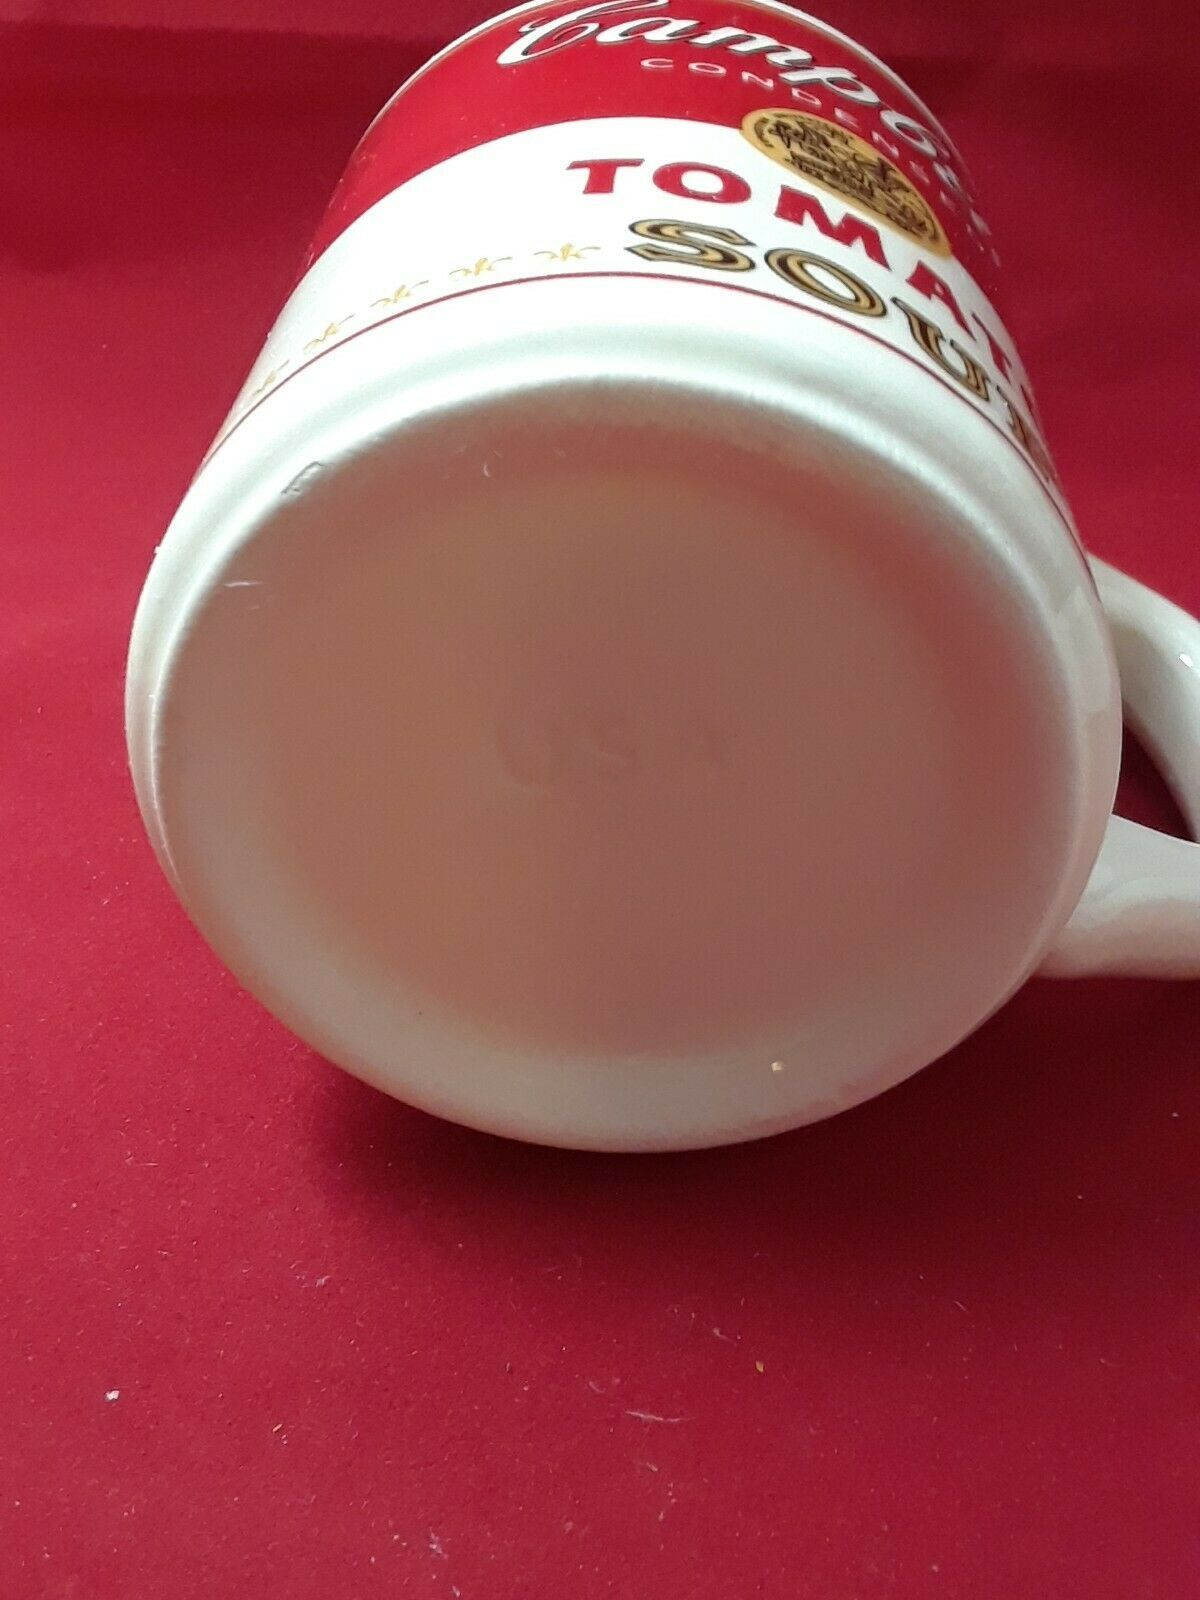 Collectible Campbell's Tomato Soup Mug Cup 8 oz in The Original Styrofoam Mailer image 10